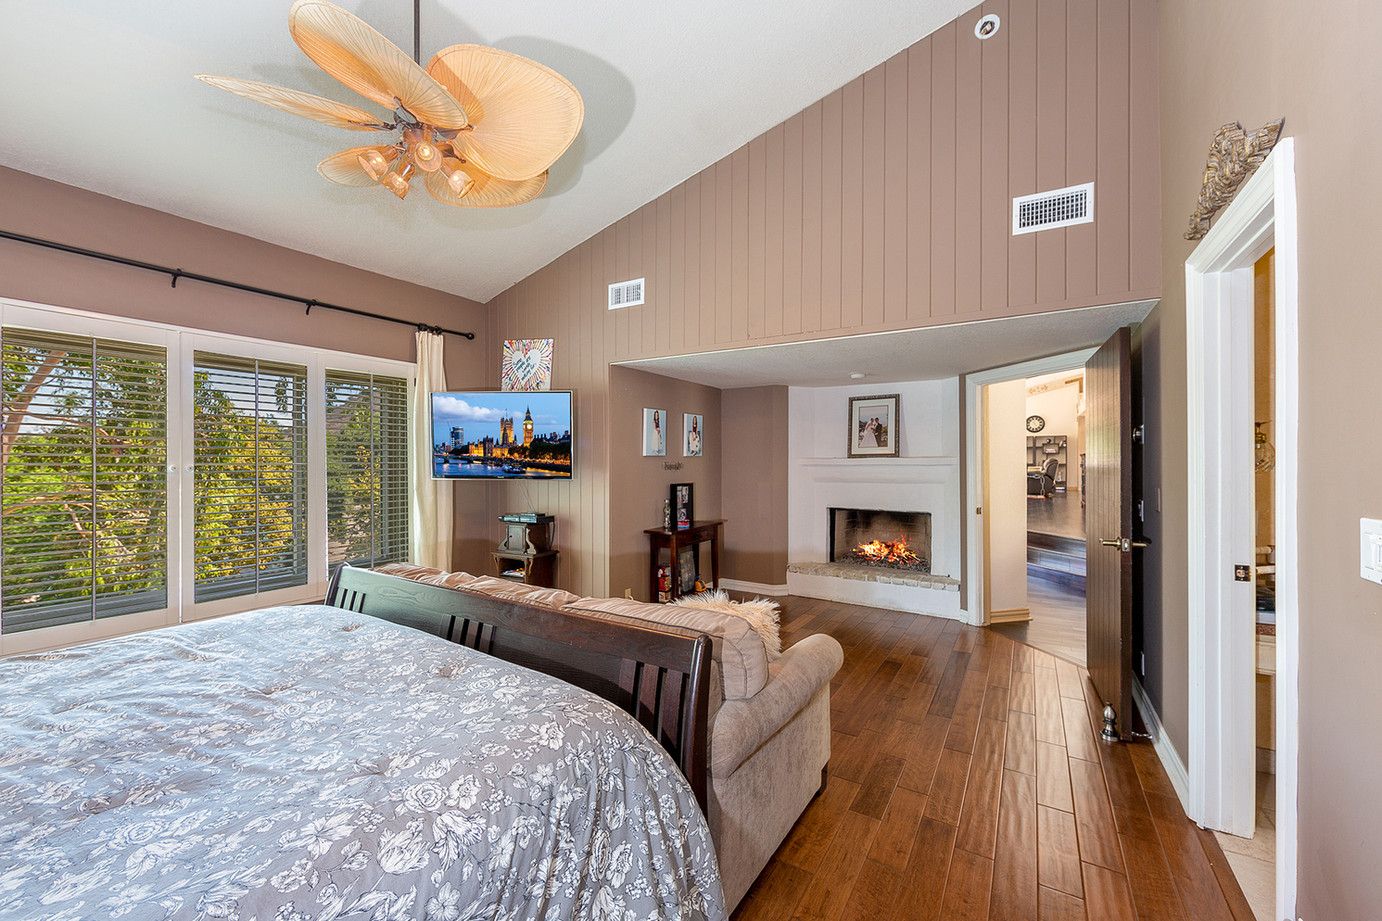 Cozy Fireplace in the Master Bedroom